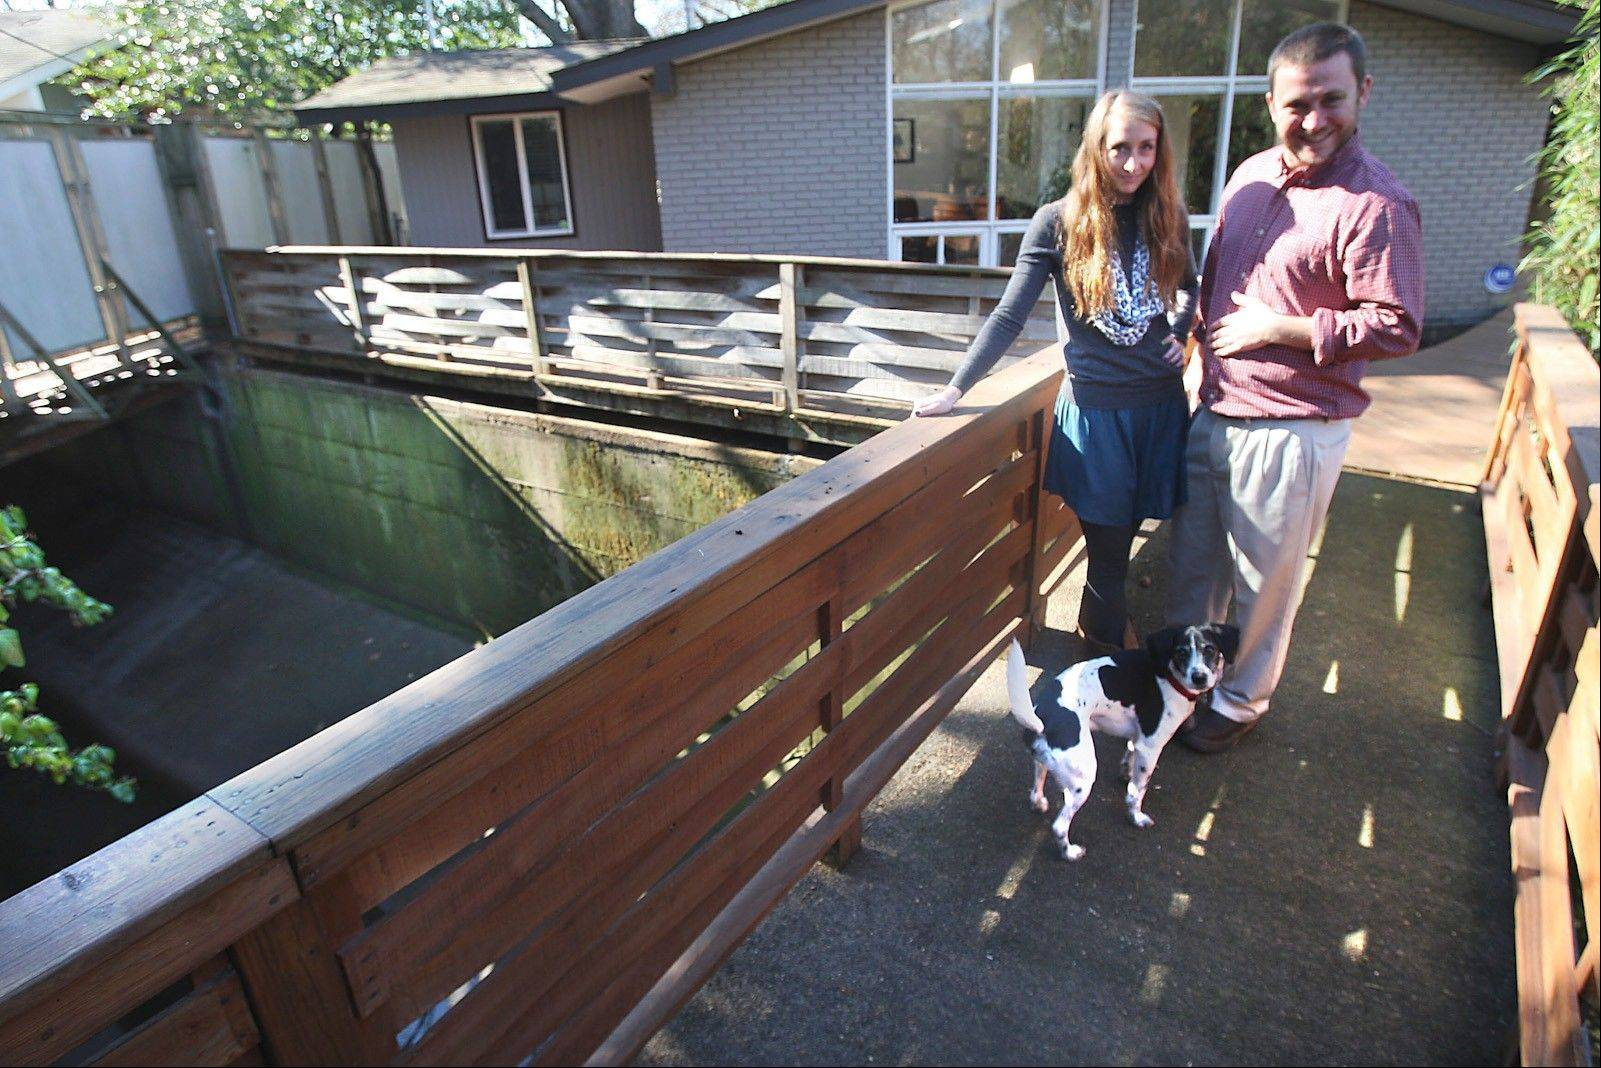 Cate and Paul Plekon and their dog Sampson stand on a bridge in front of their home, which borders a concrete drainage ditch that carries Cypress Creek through the Memphis neighborhood.